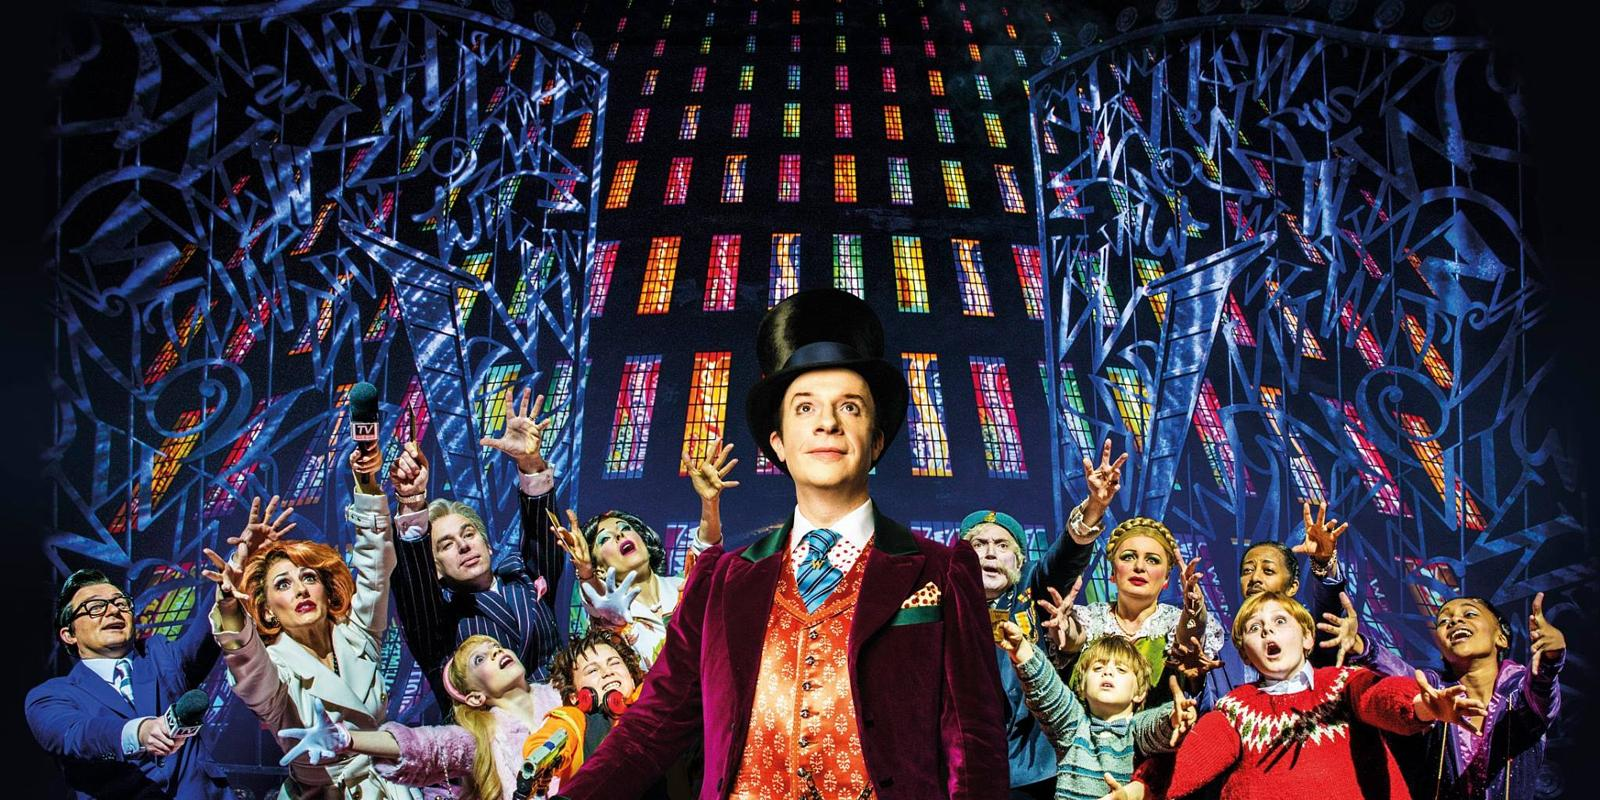 Charlie and the Chocolate Factory is closing on the West End in 2017